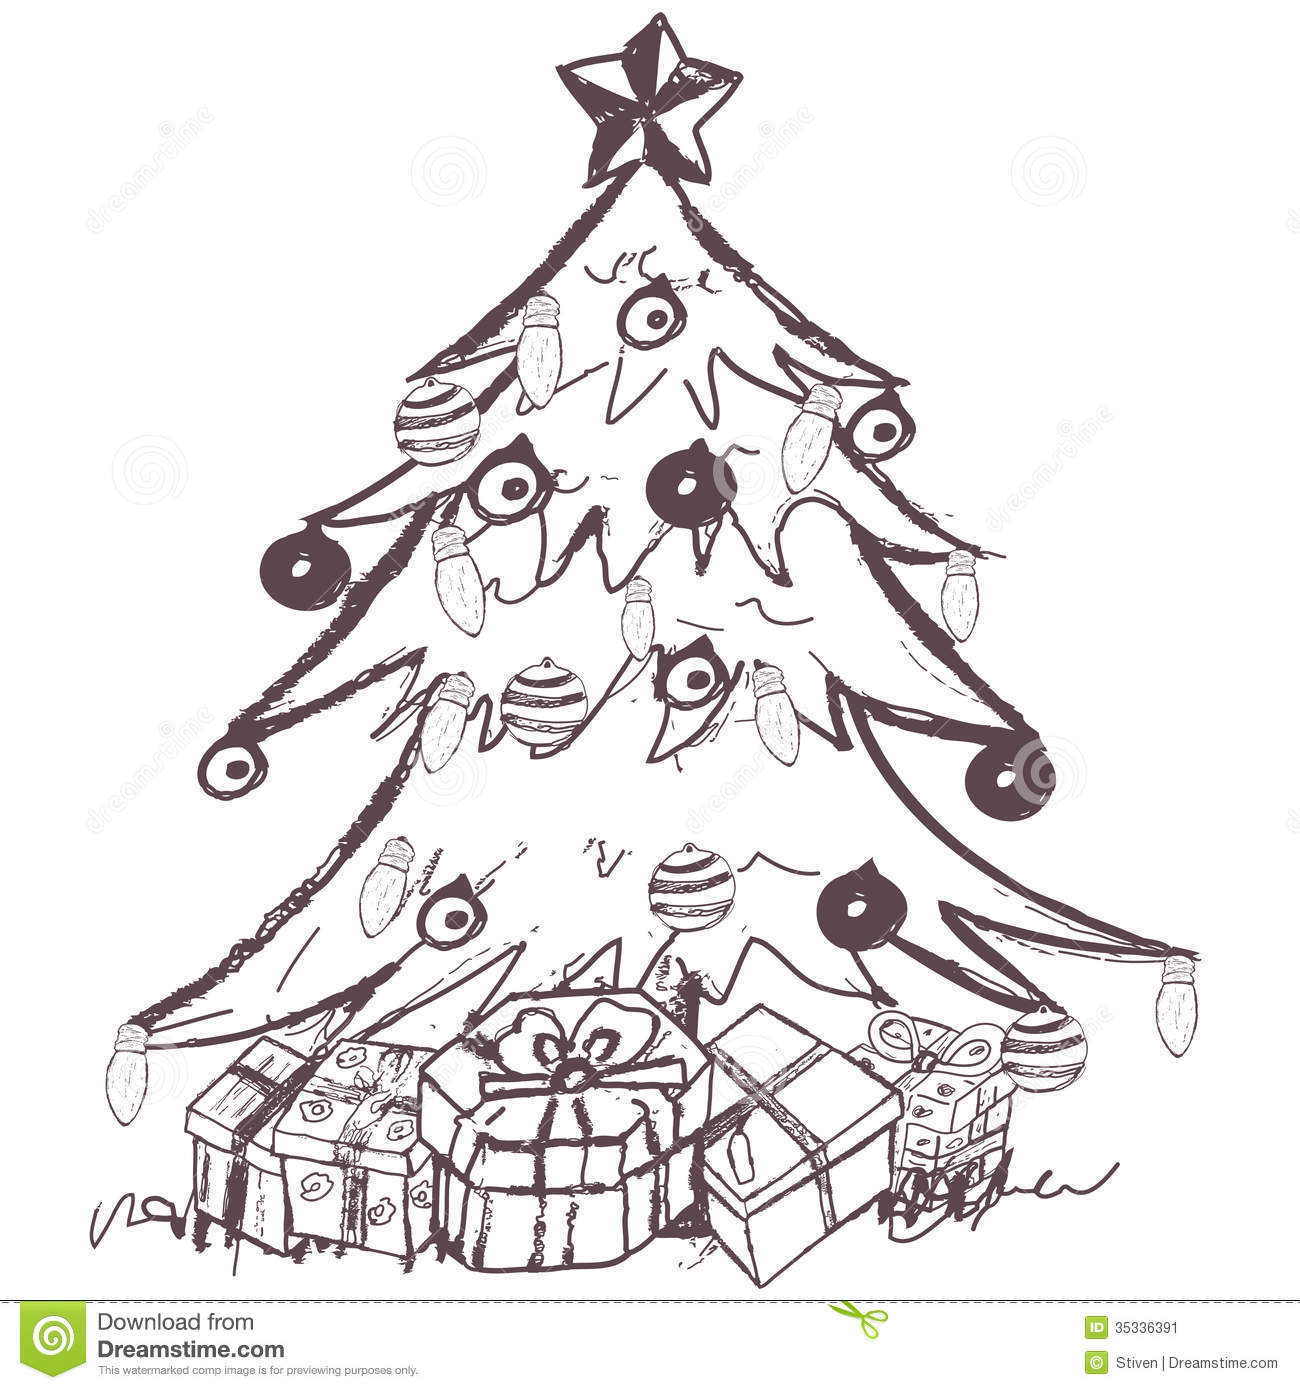 Realistic christmas tree drawing - Hand Drawn Doodle Sketch Of A Christmas Tree With Presents